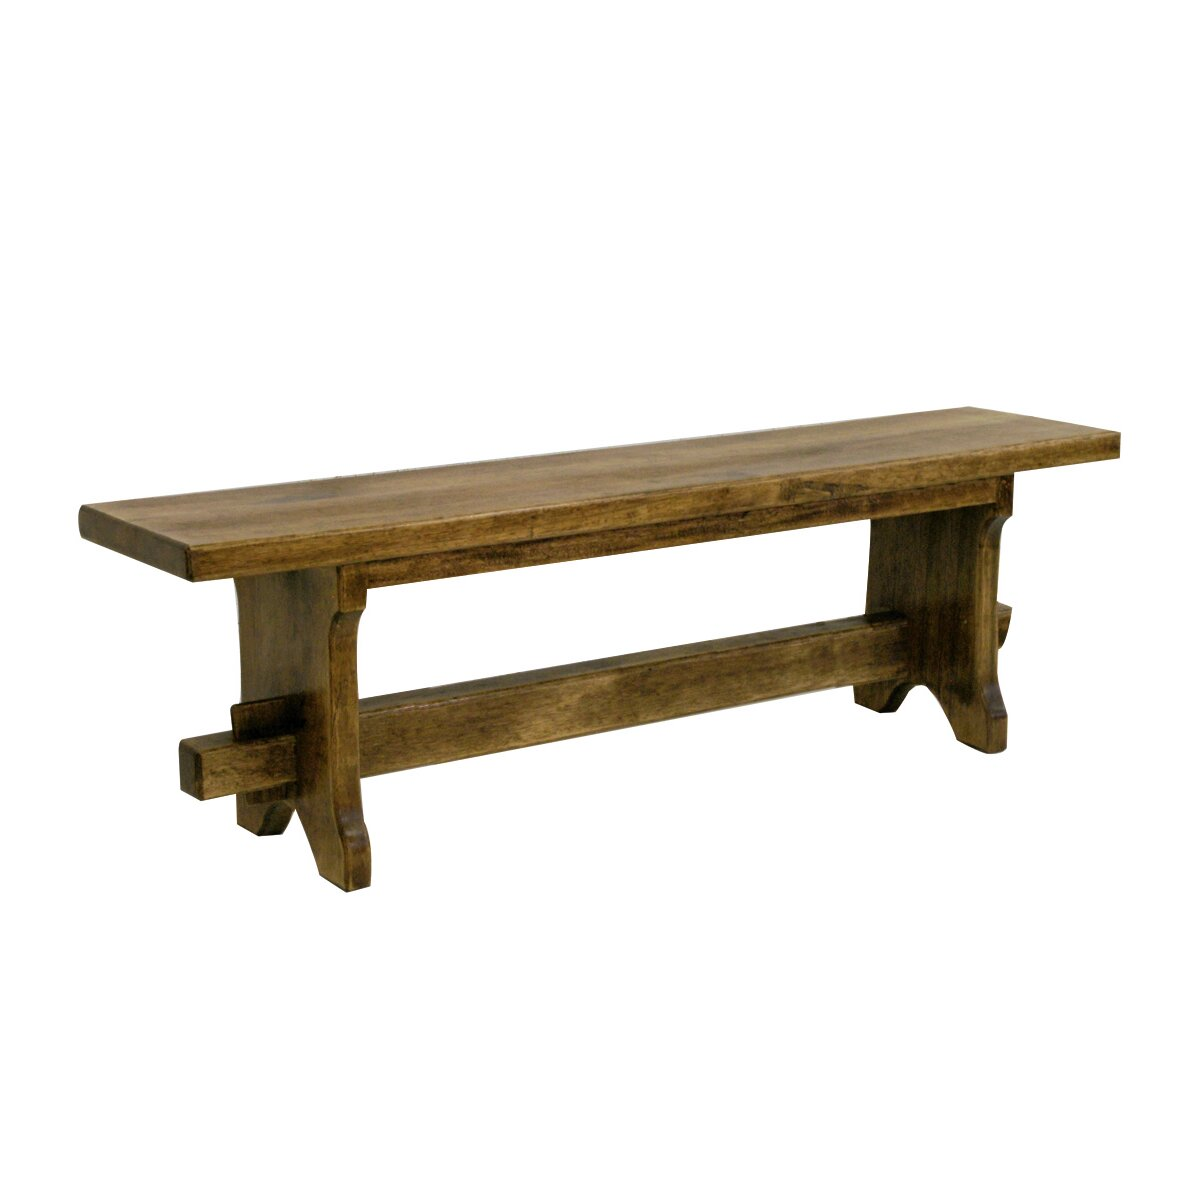 Artesano Home Decor Reclaimed Wood Bench Reviews Wayfair